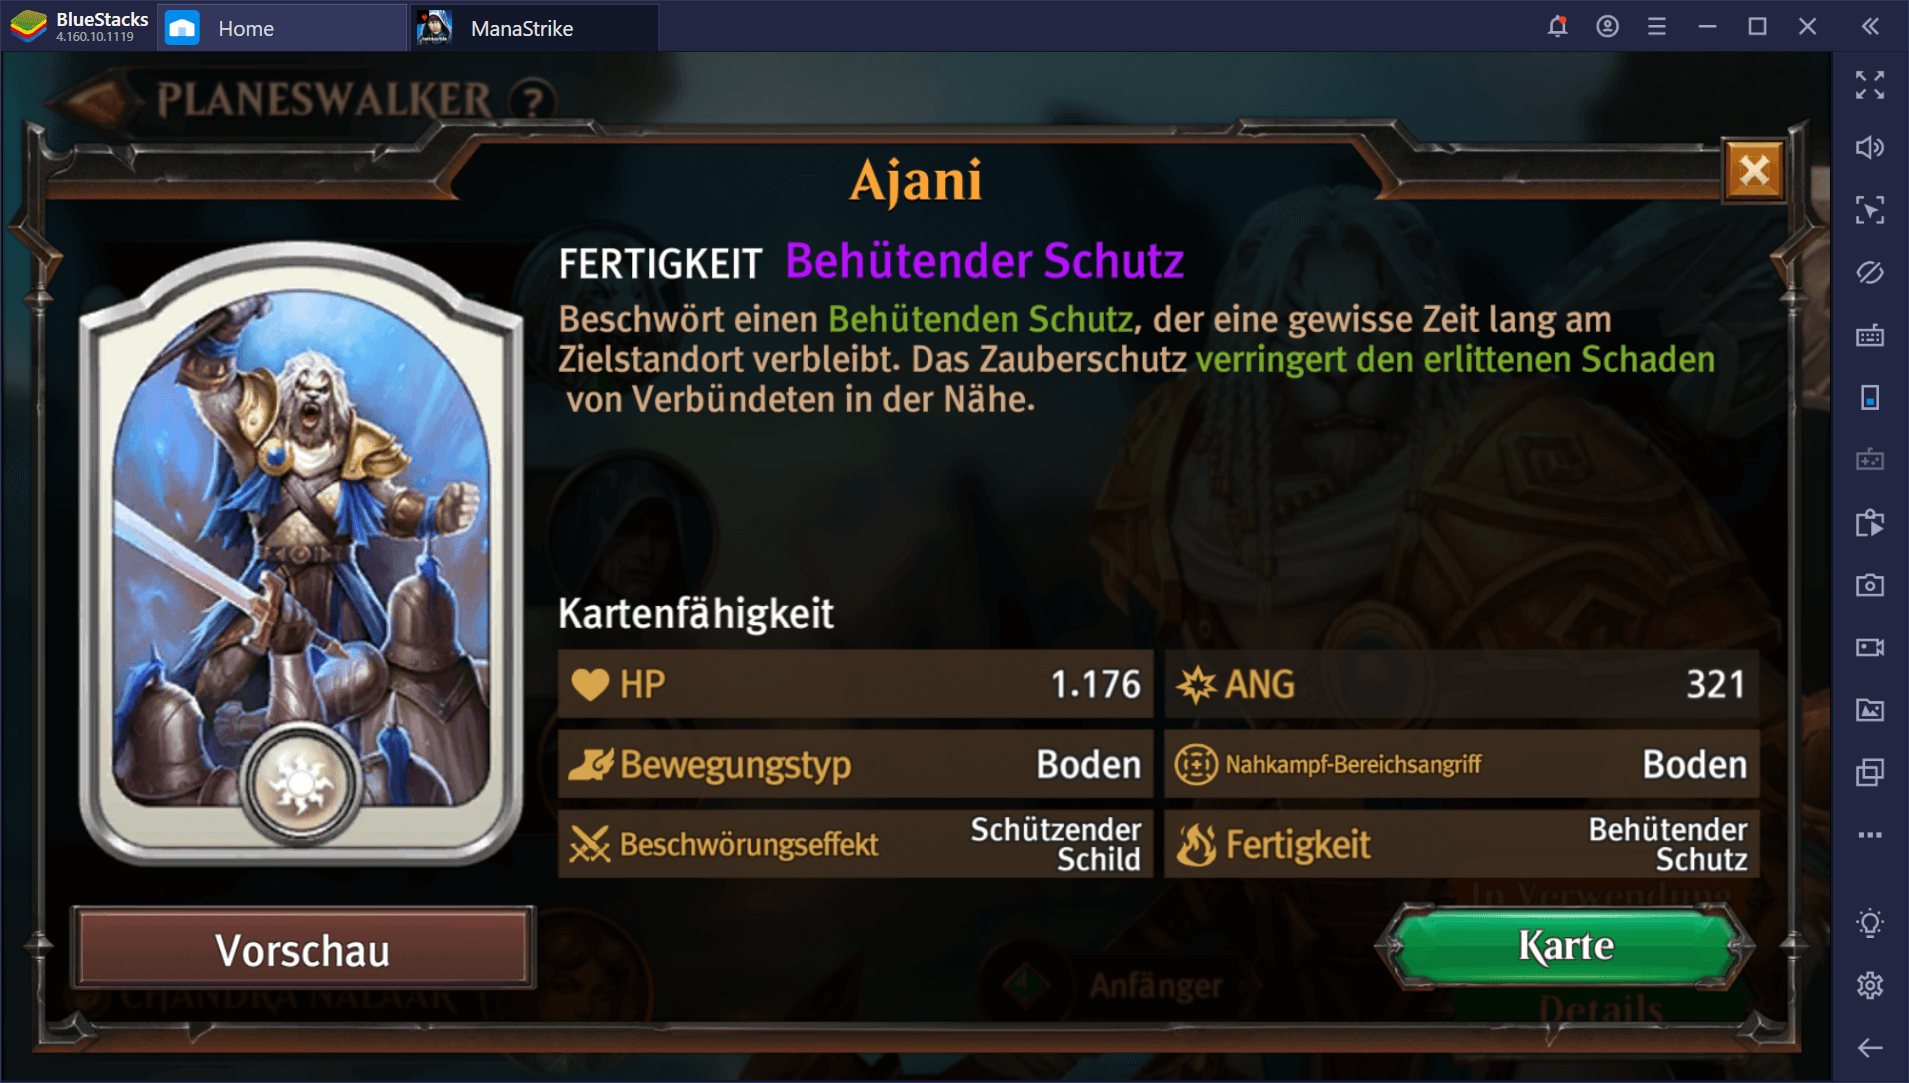 So spielst du Magic: ManaStrike auf BlueStacks